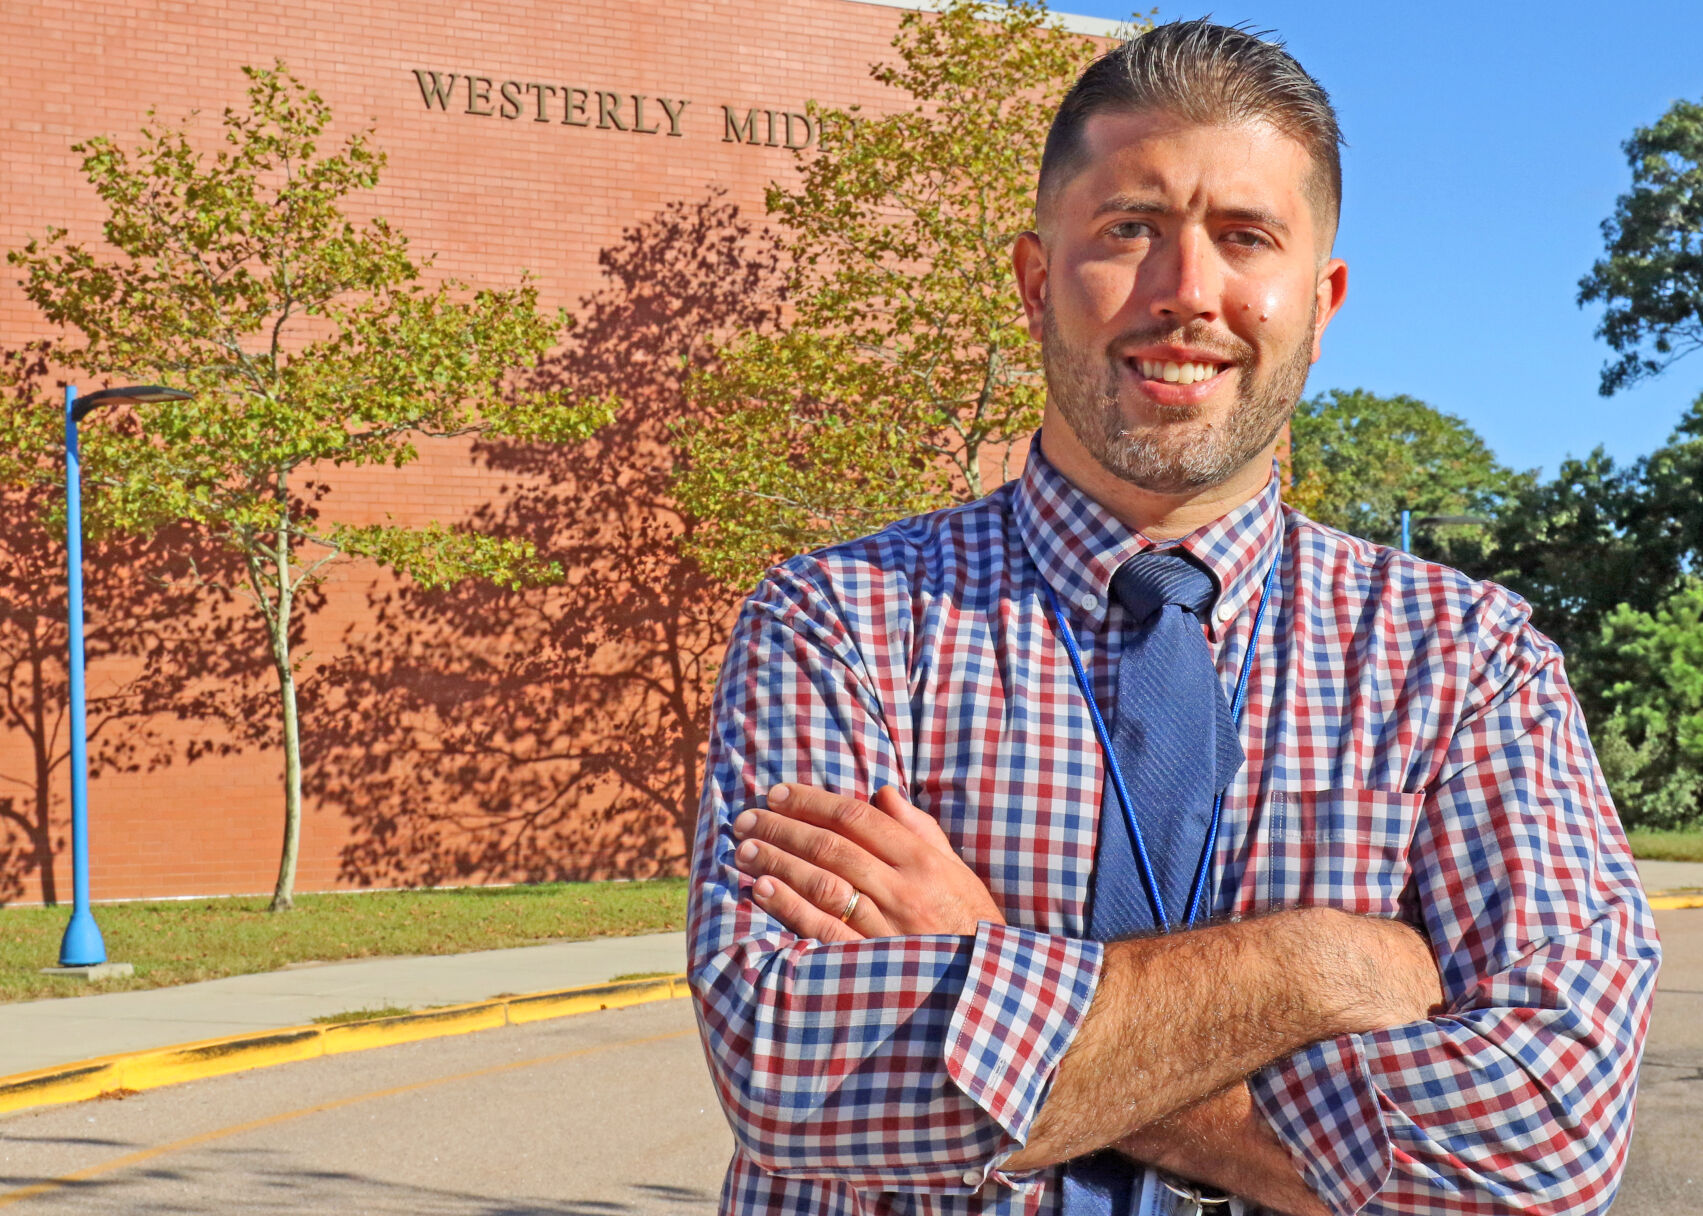 Connell returns to Westerly Middle in new role as assistant principal